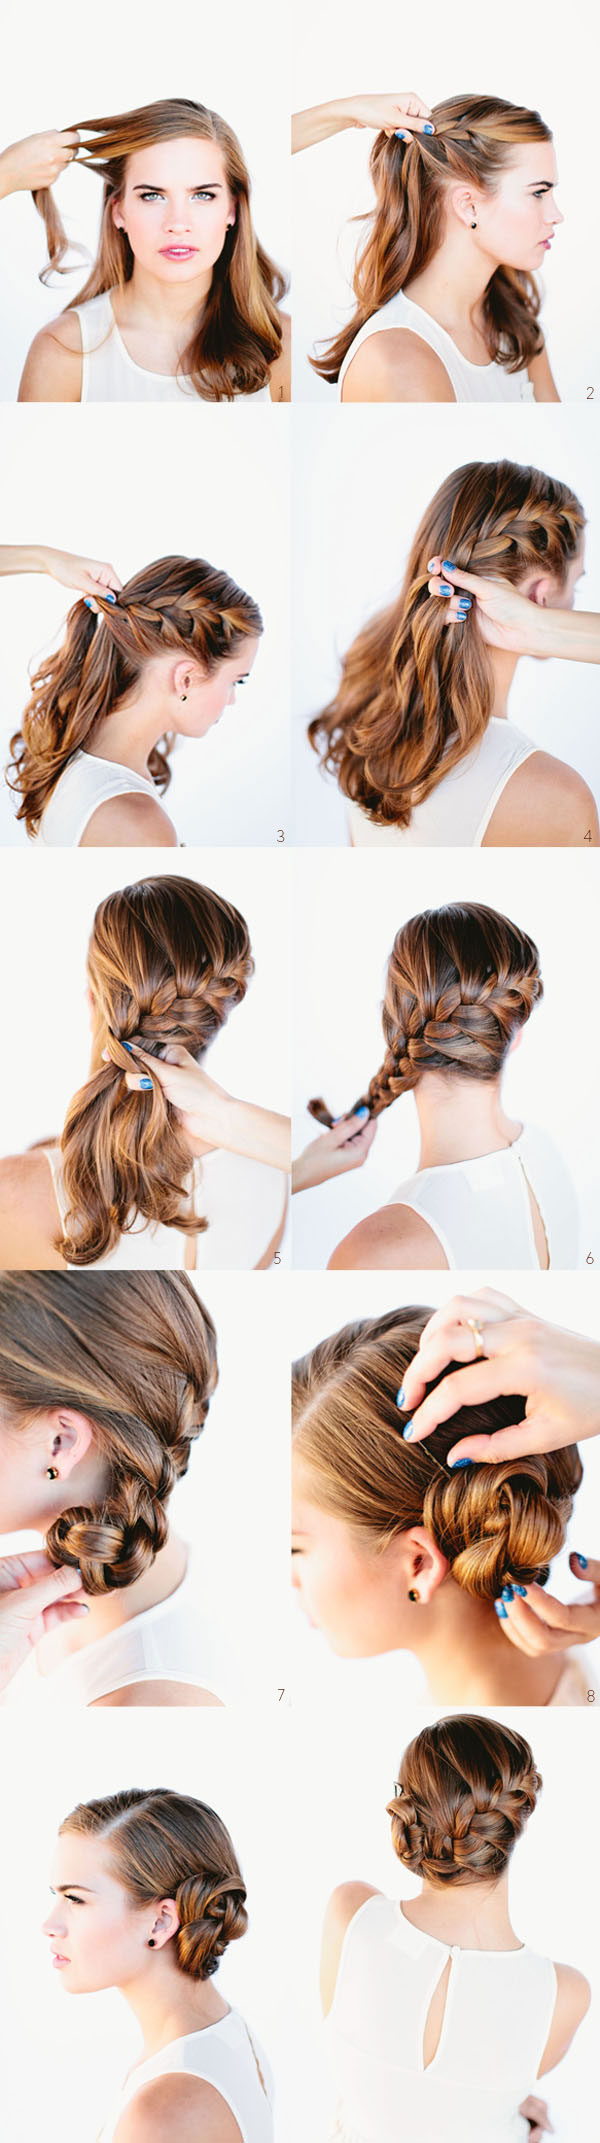 FRENCH-BRAID-BUN-HAIR